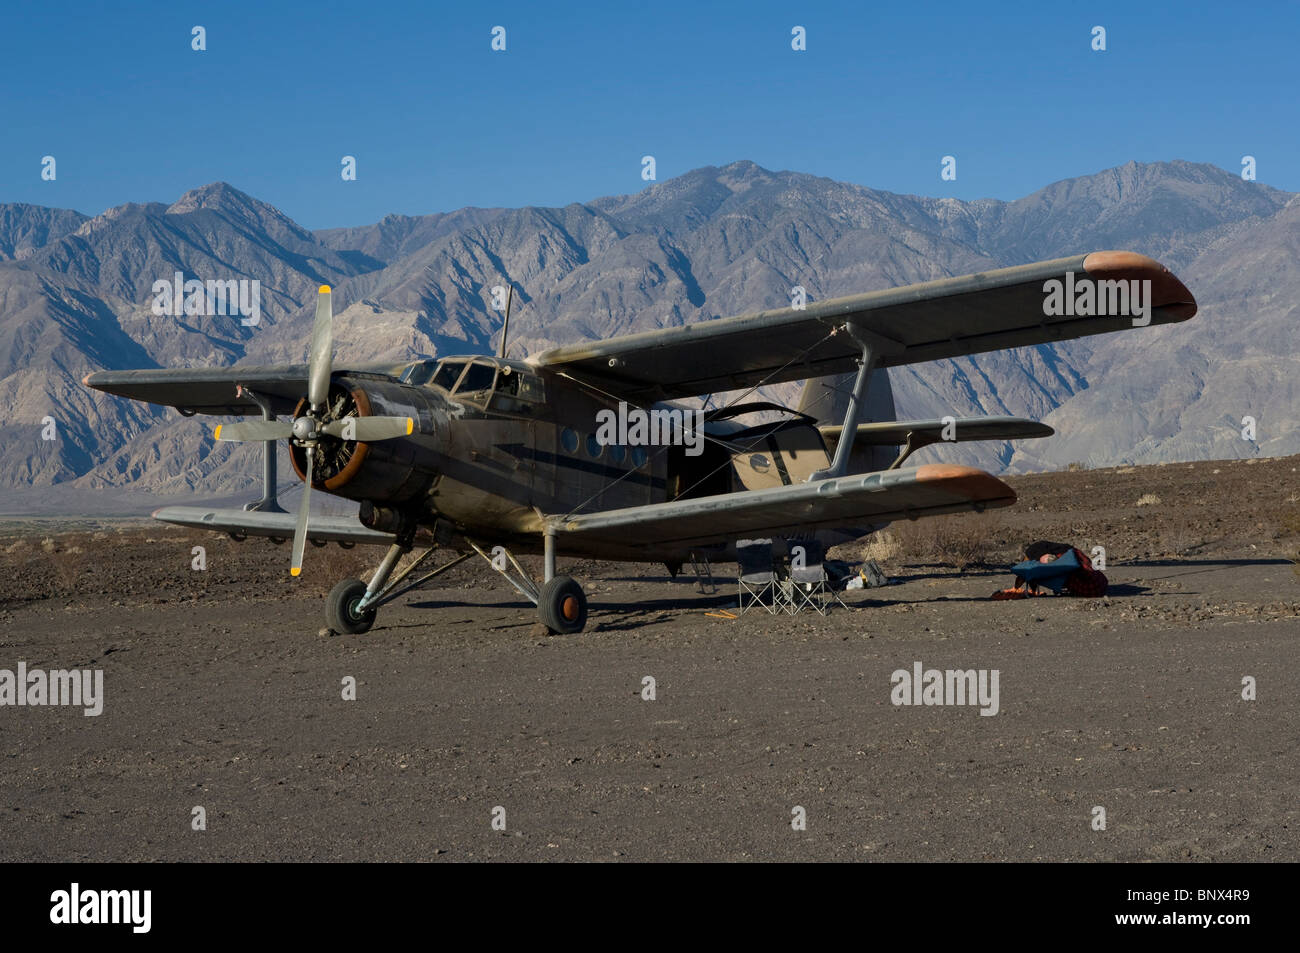 Antonov AN-2 biplane parked at Chicken Strip Saline Valley Death Valley National Park California near hot springs - Stock Image